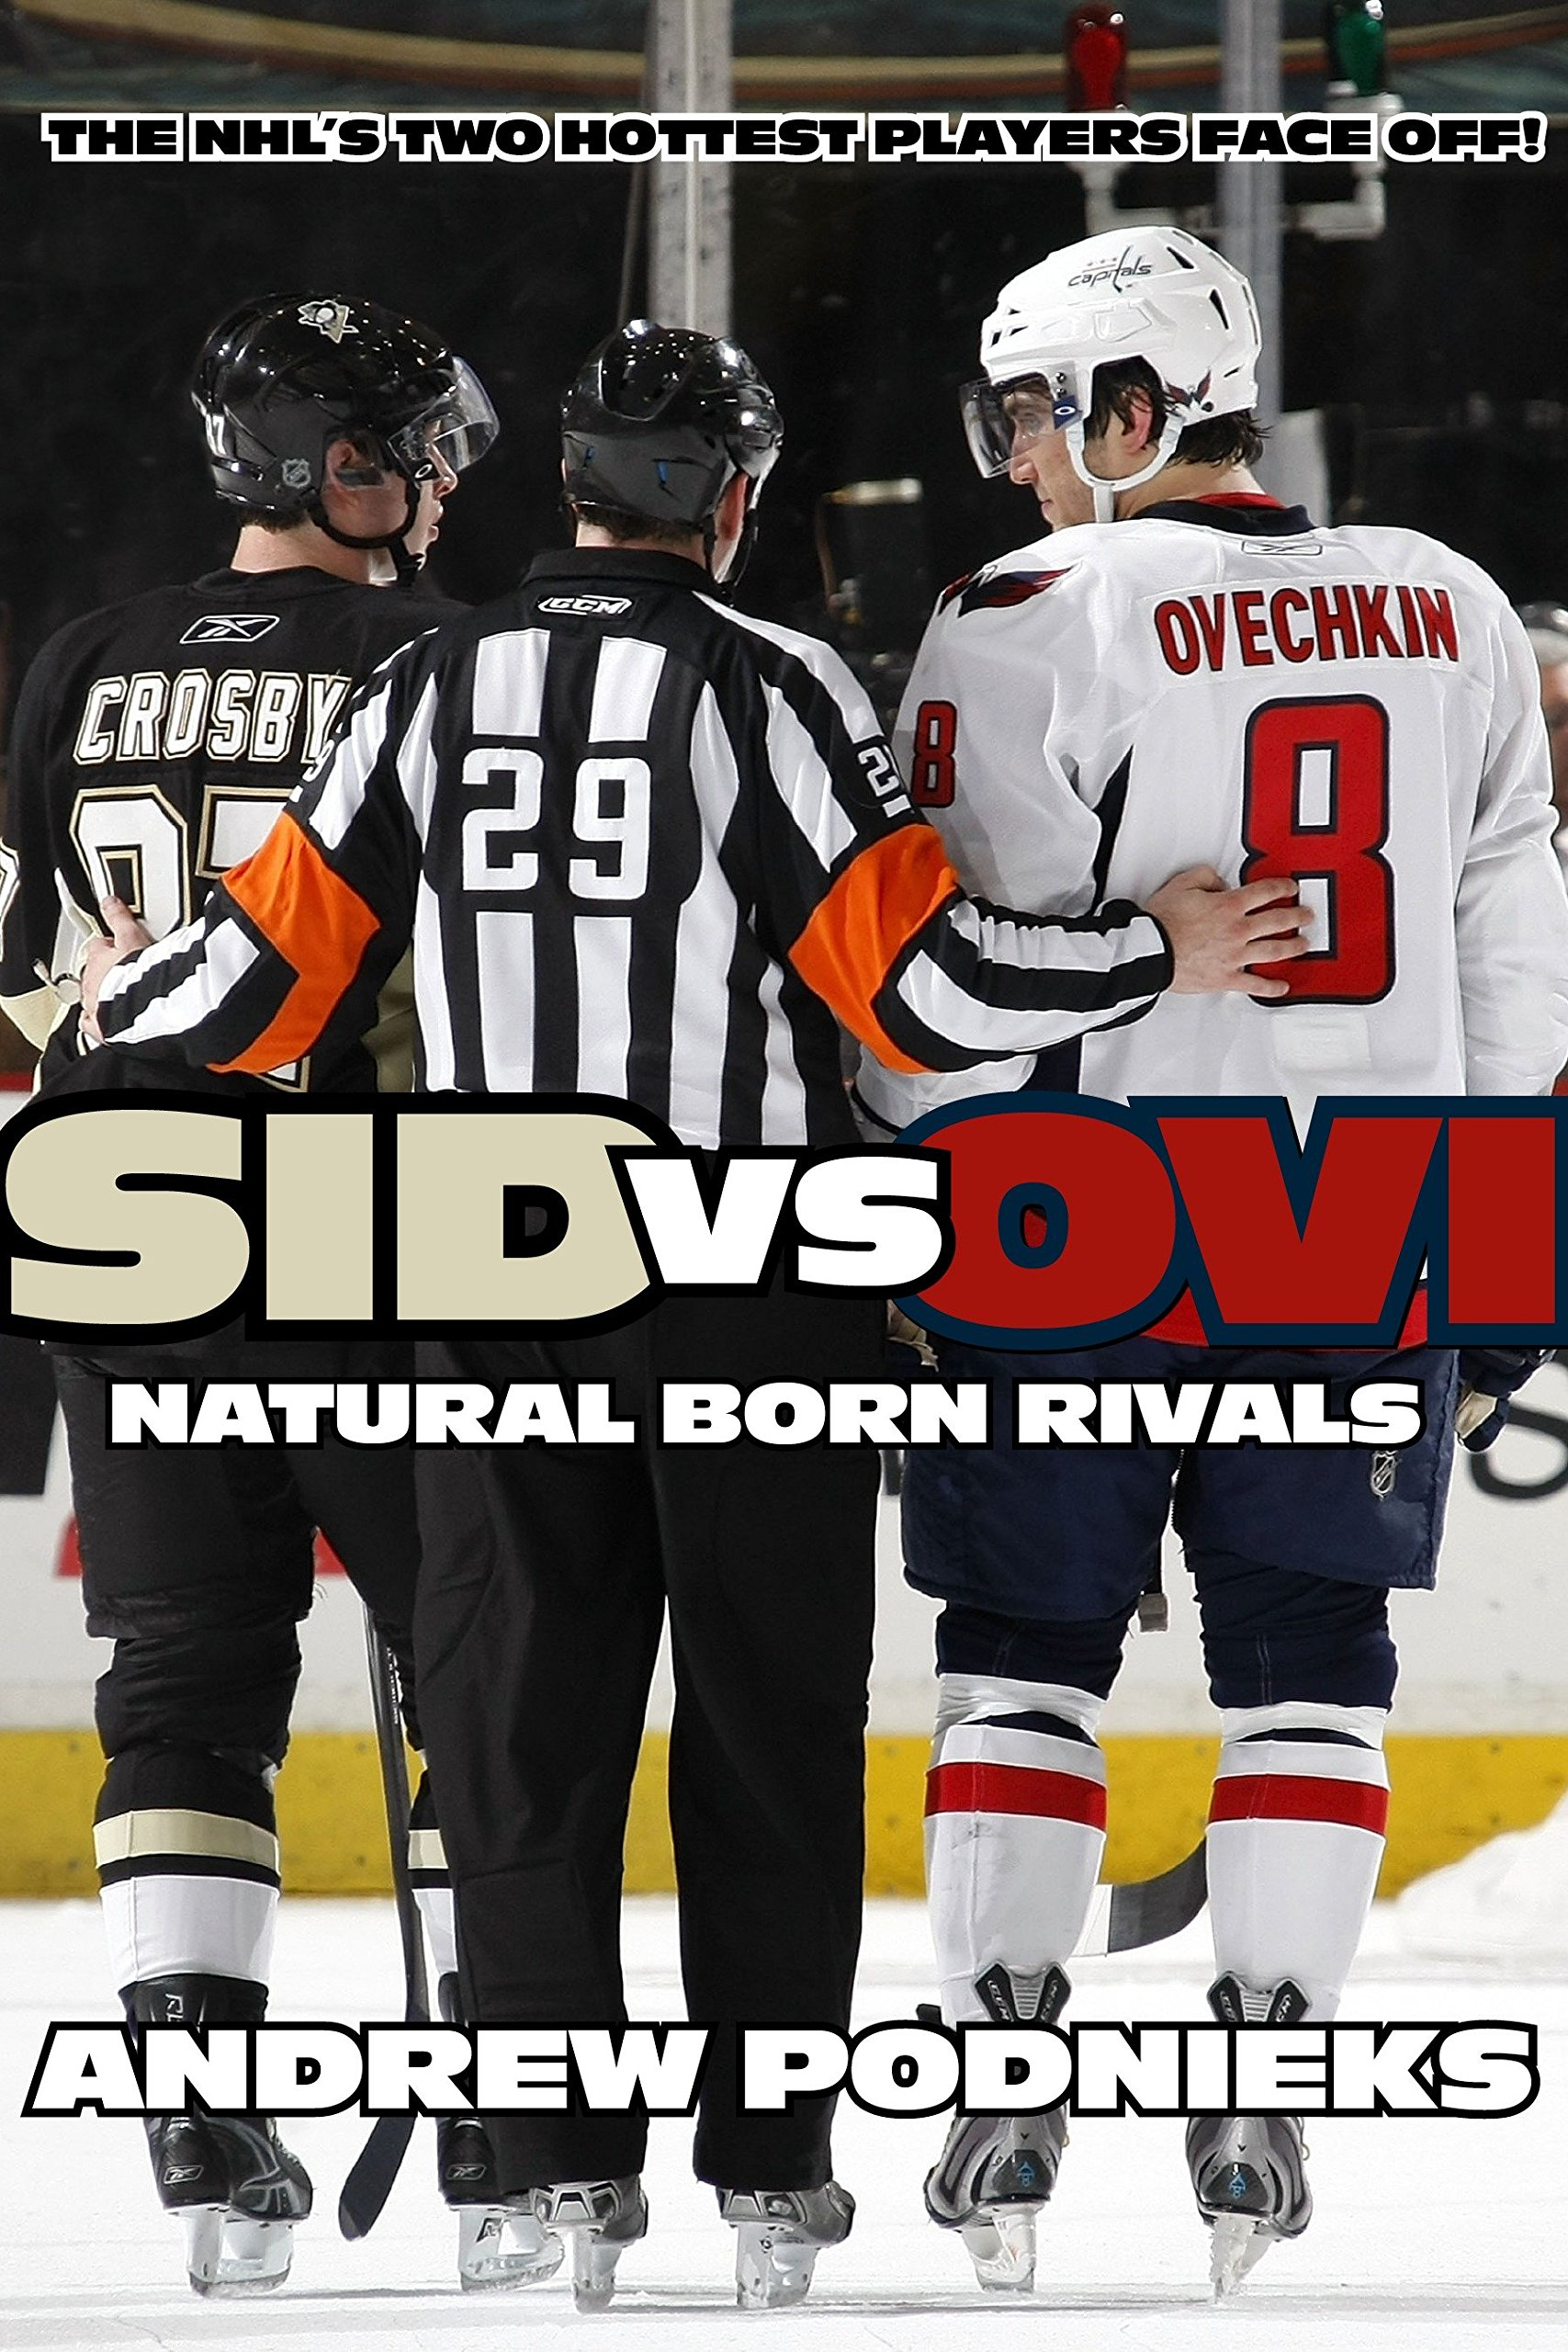 Ovi  Crosby and Ovechkin - Natural Born Rivals Paperback – October 25 0637b203a